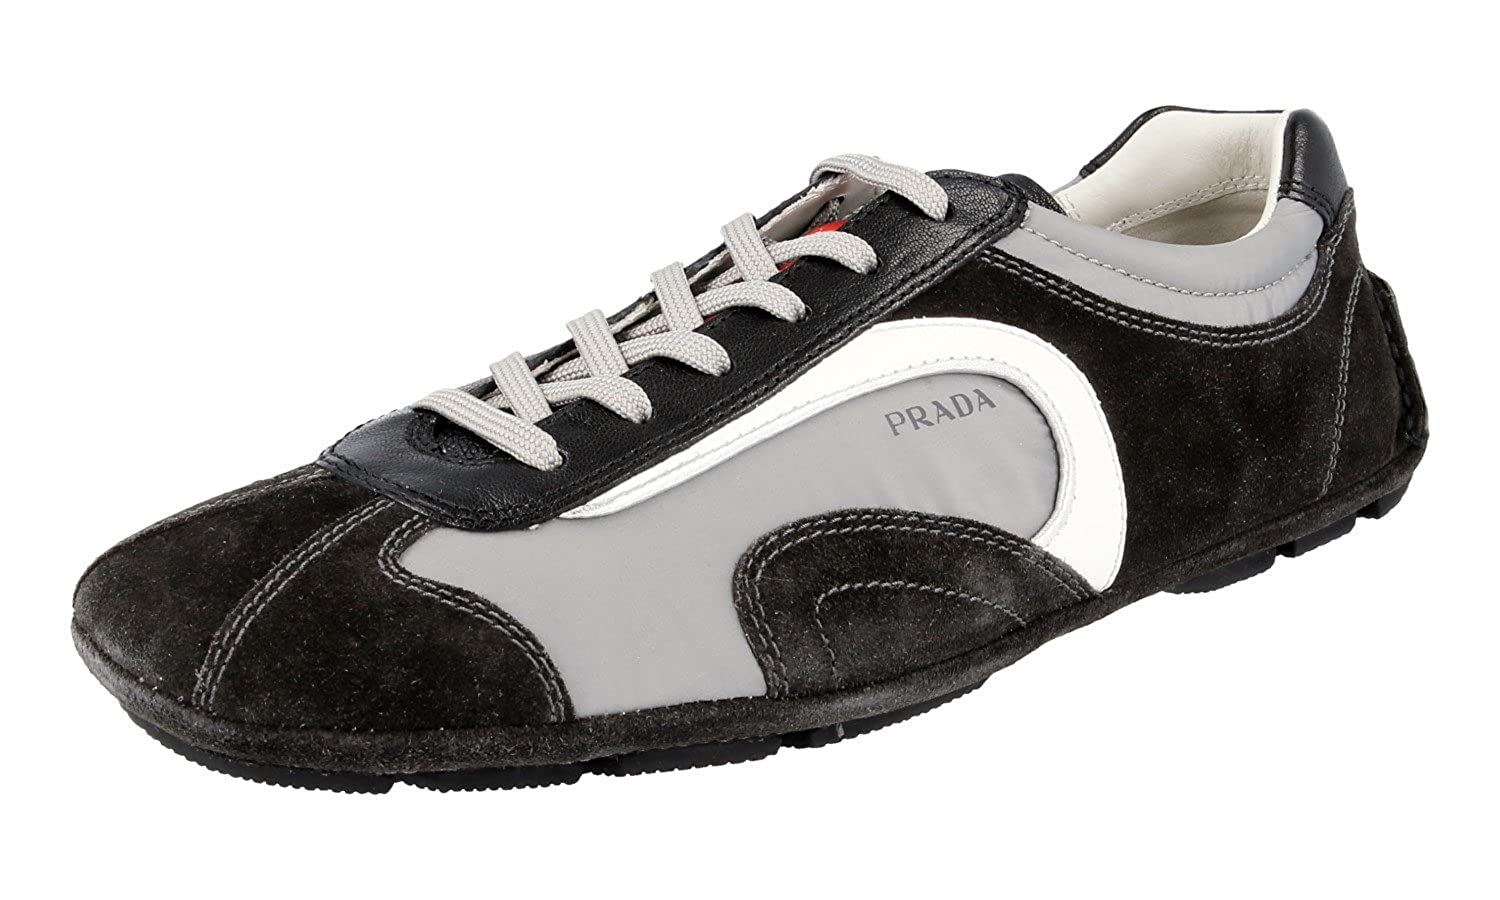 good prada mens men sneakers black athletic 71473 cfa40  germany amazon prada  mens 4e1165 otq f0fhm grey leather sneaker eu 6 40 us 7 fashion 9fcad125c30